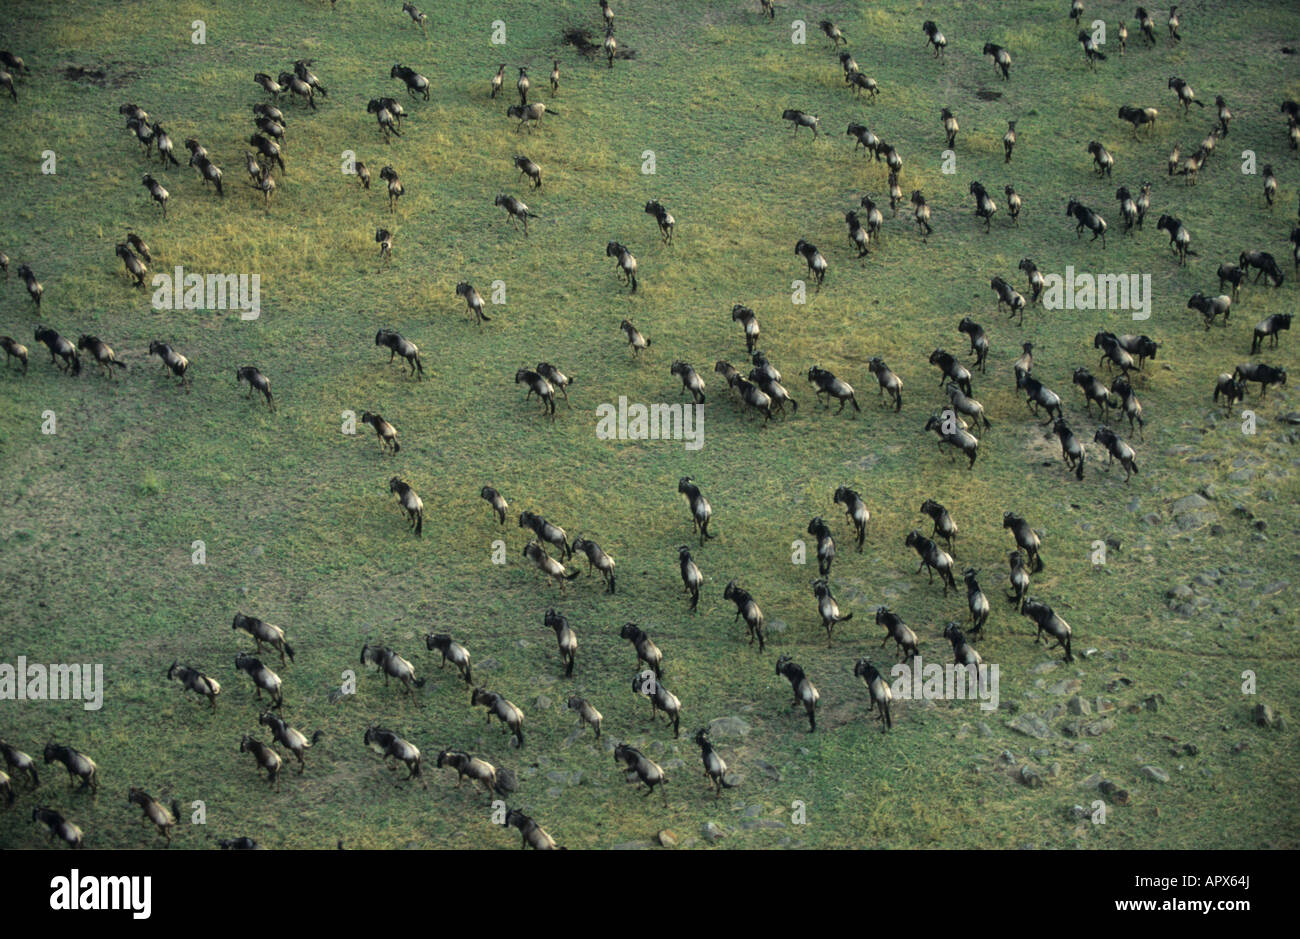 Aerial view of a White bearded wildebeest herd (Connochaetes taurinus) during the migration - Stock Image